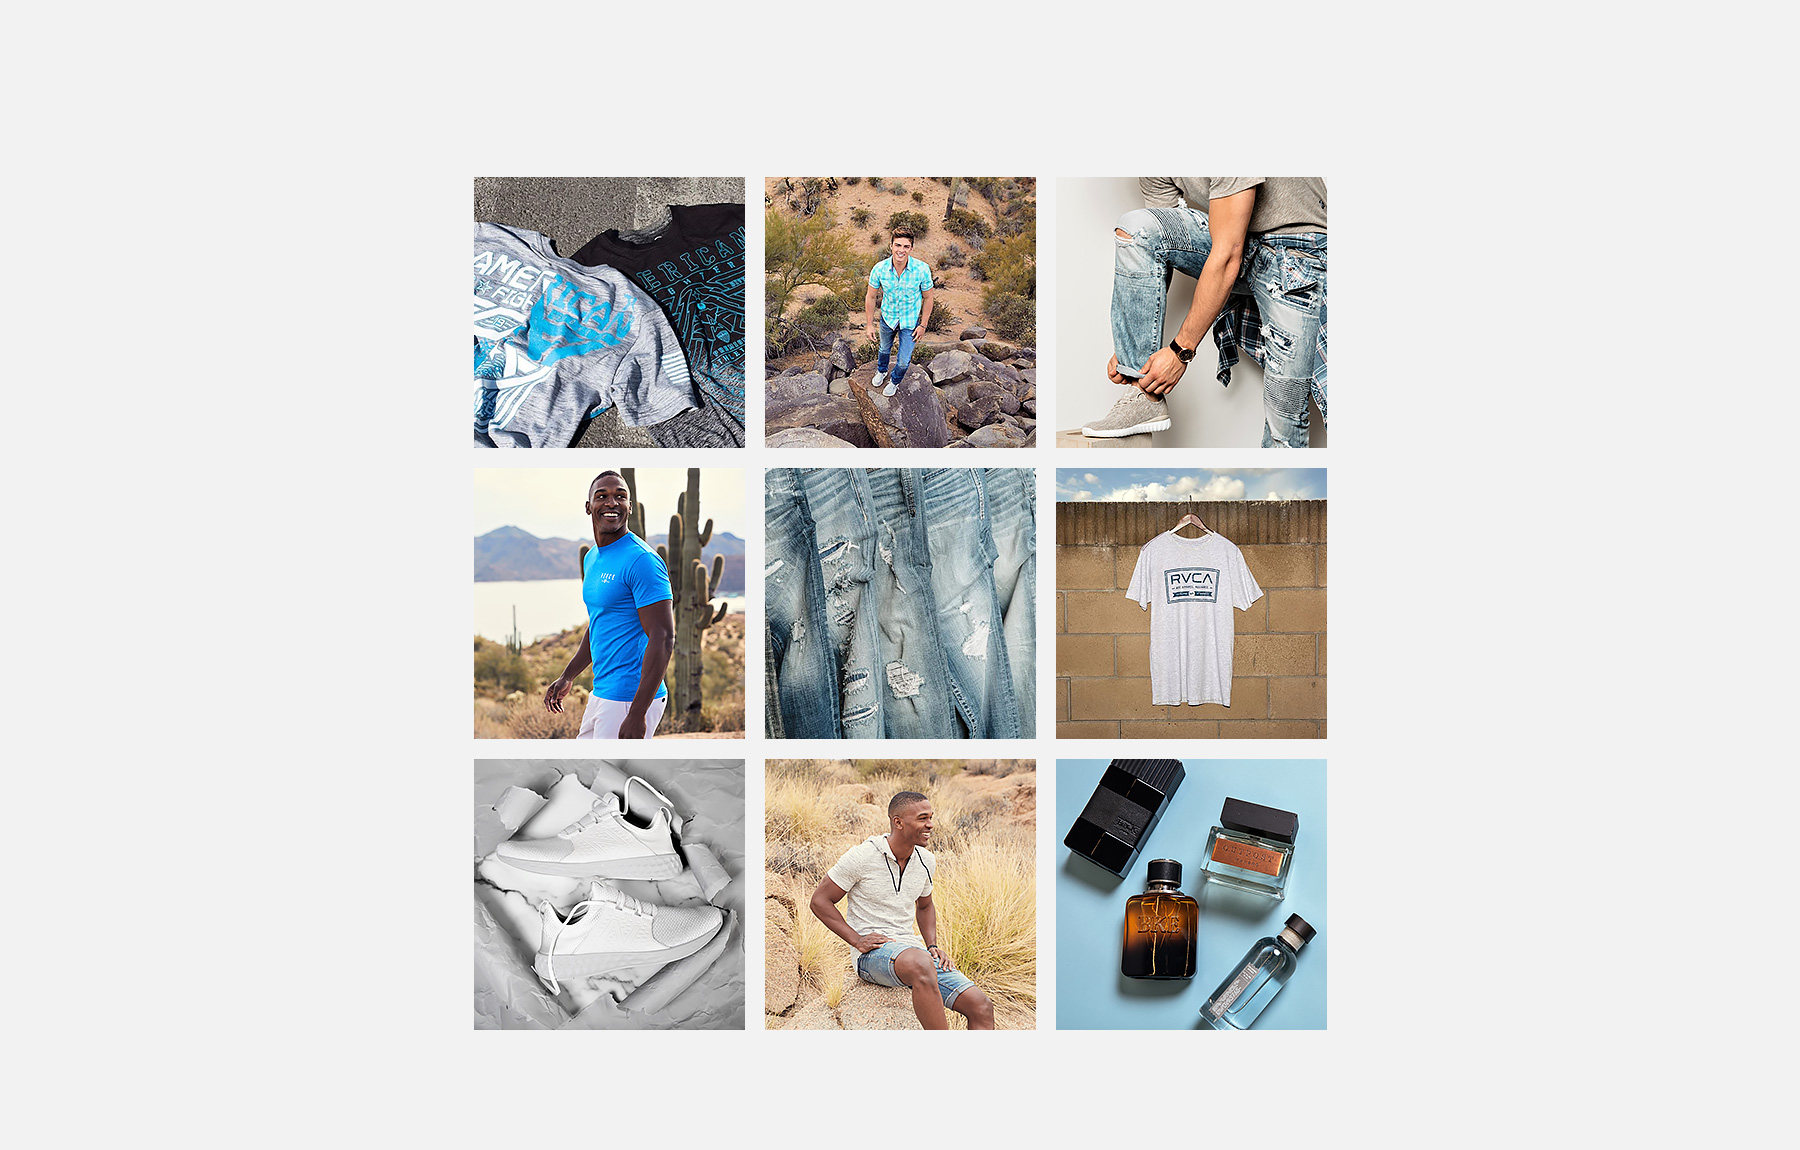 Collage of men's Buckle Instagram